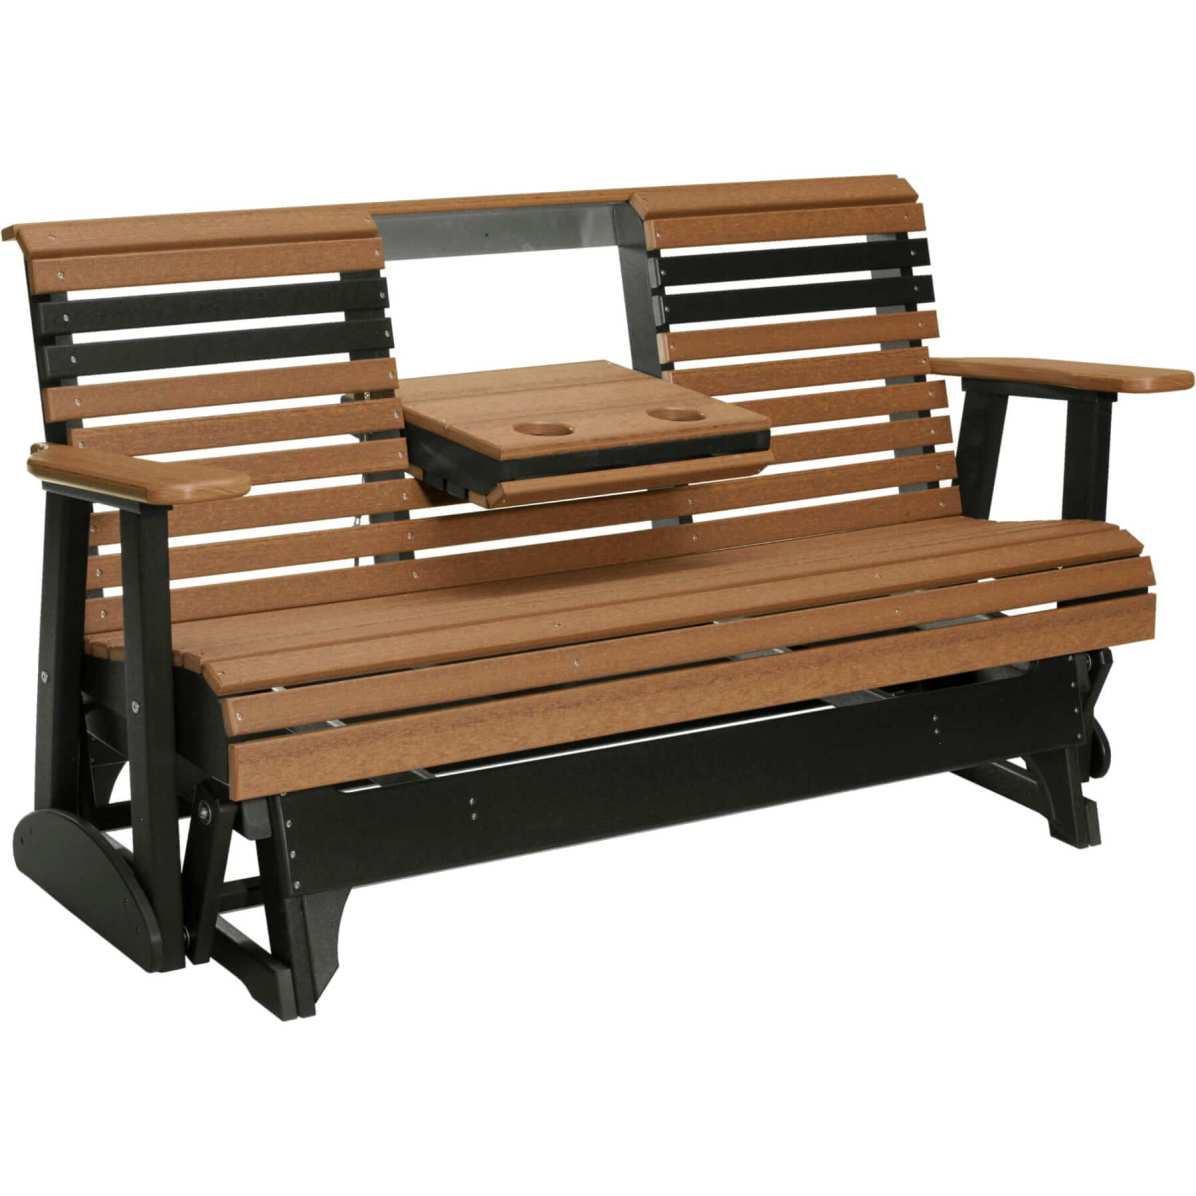 5PPGAMB 5' Plain Poly Glider (Antique Mahogany & Black)